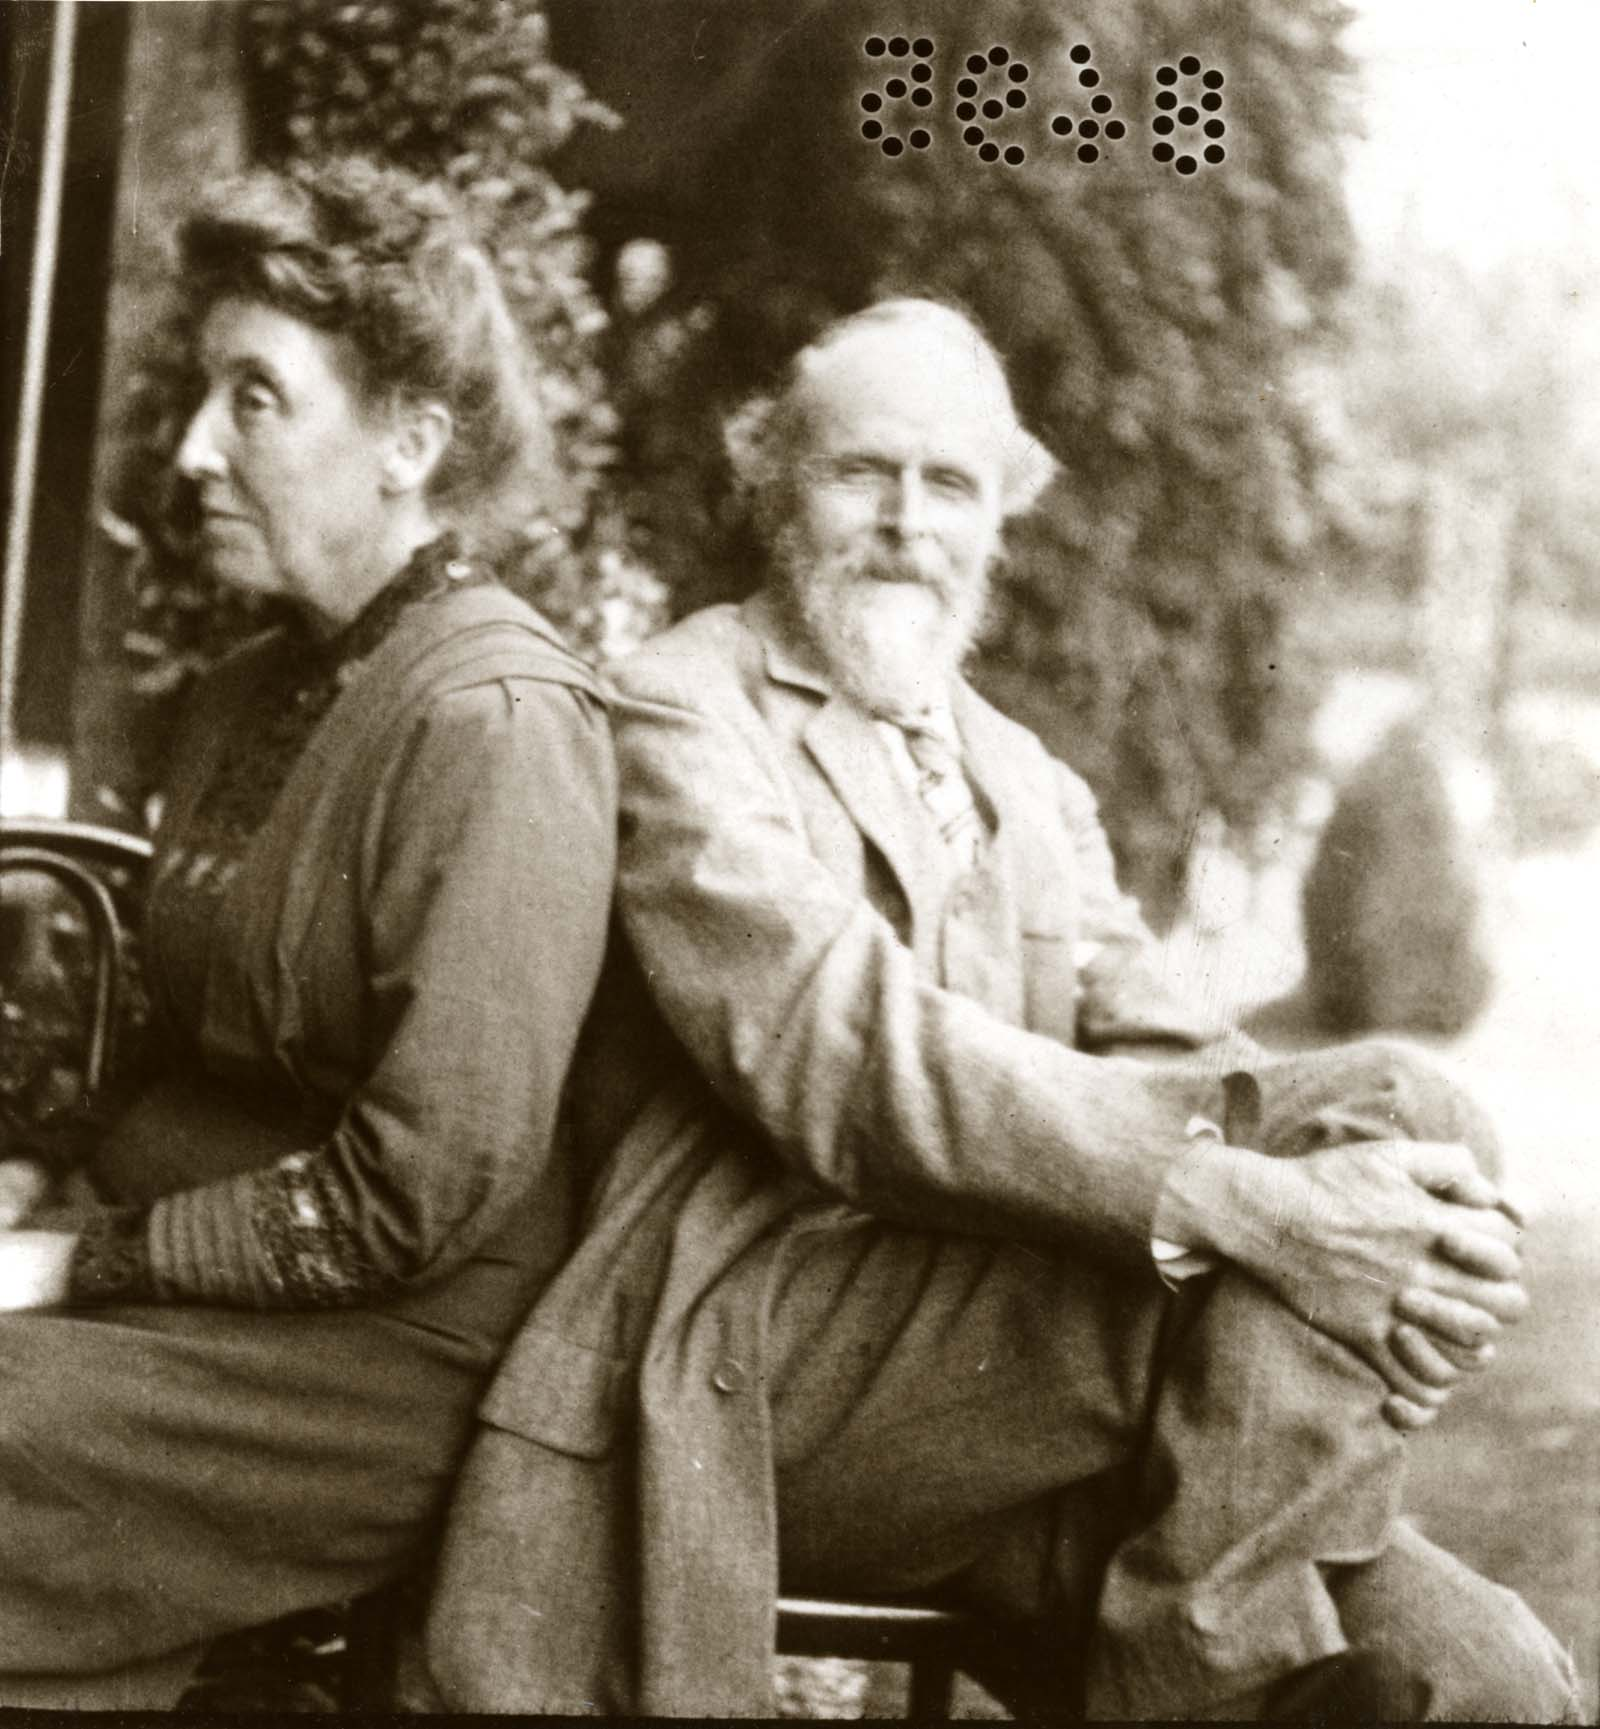 blck and white photo of a Victorian man and woman seated back to back on a bench in a garden